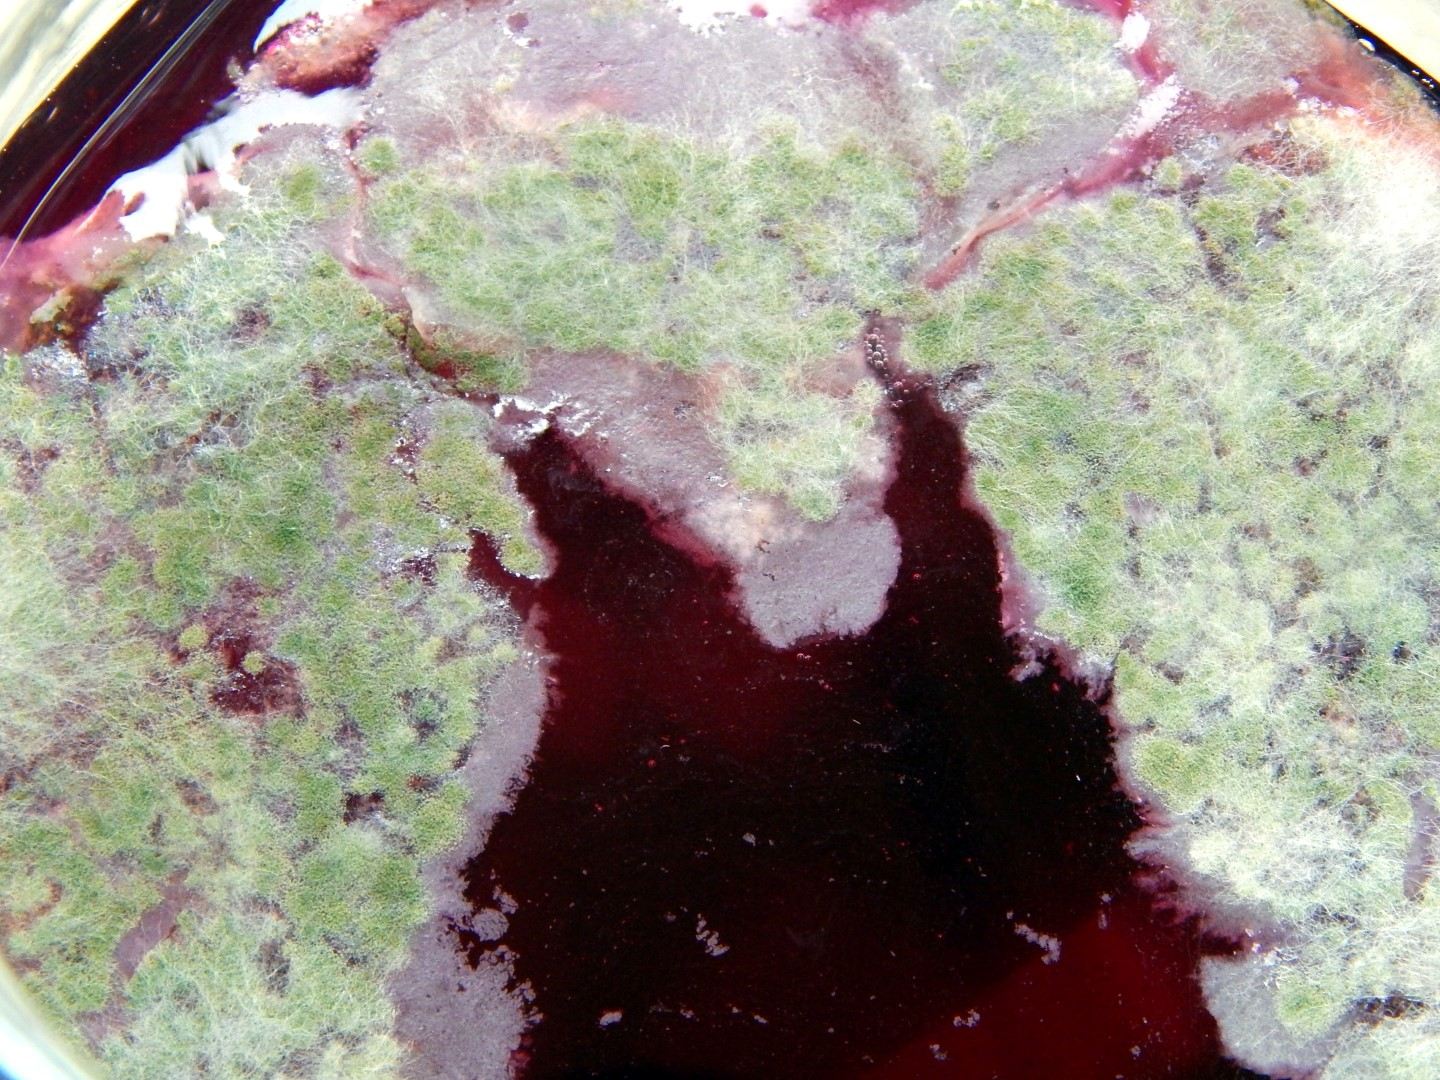 Mold on fermented beets